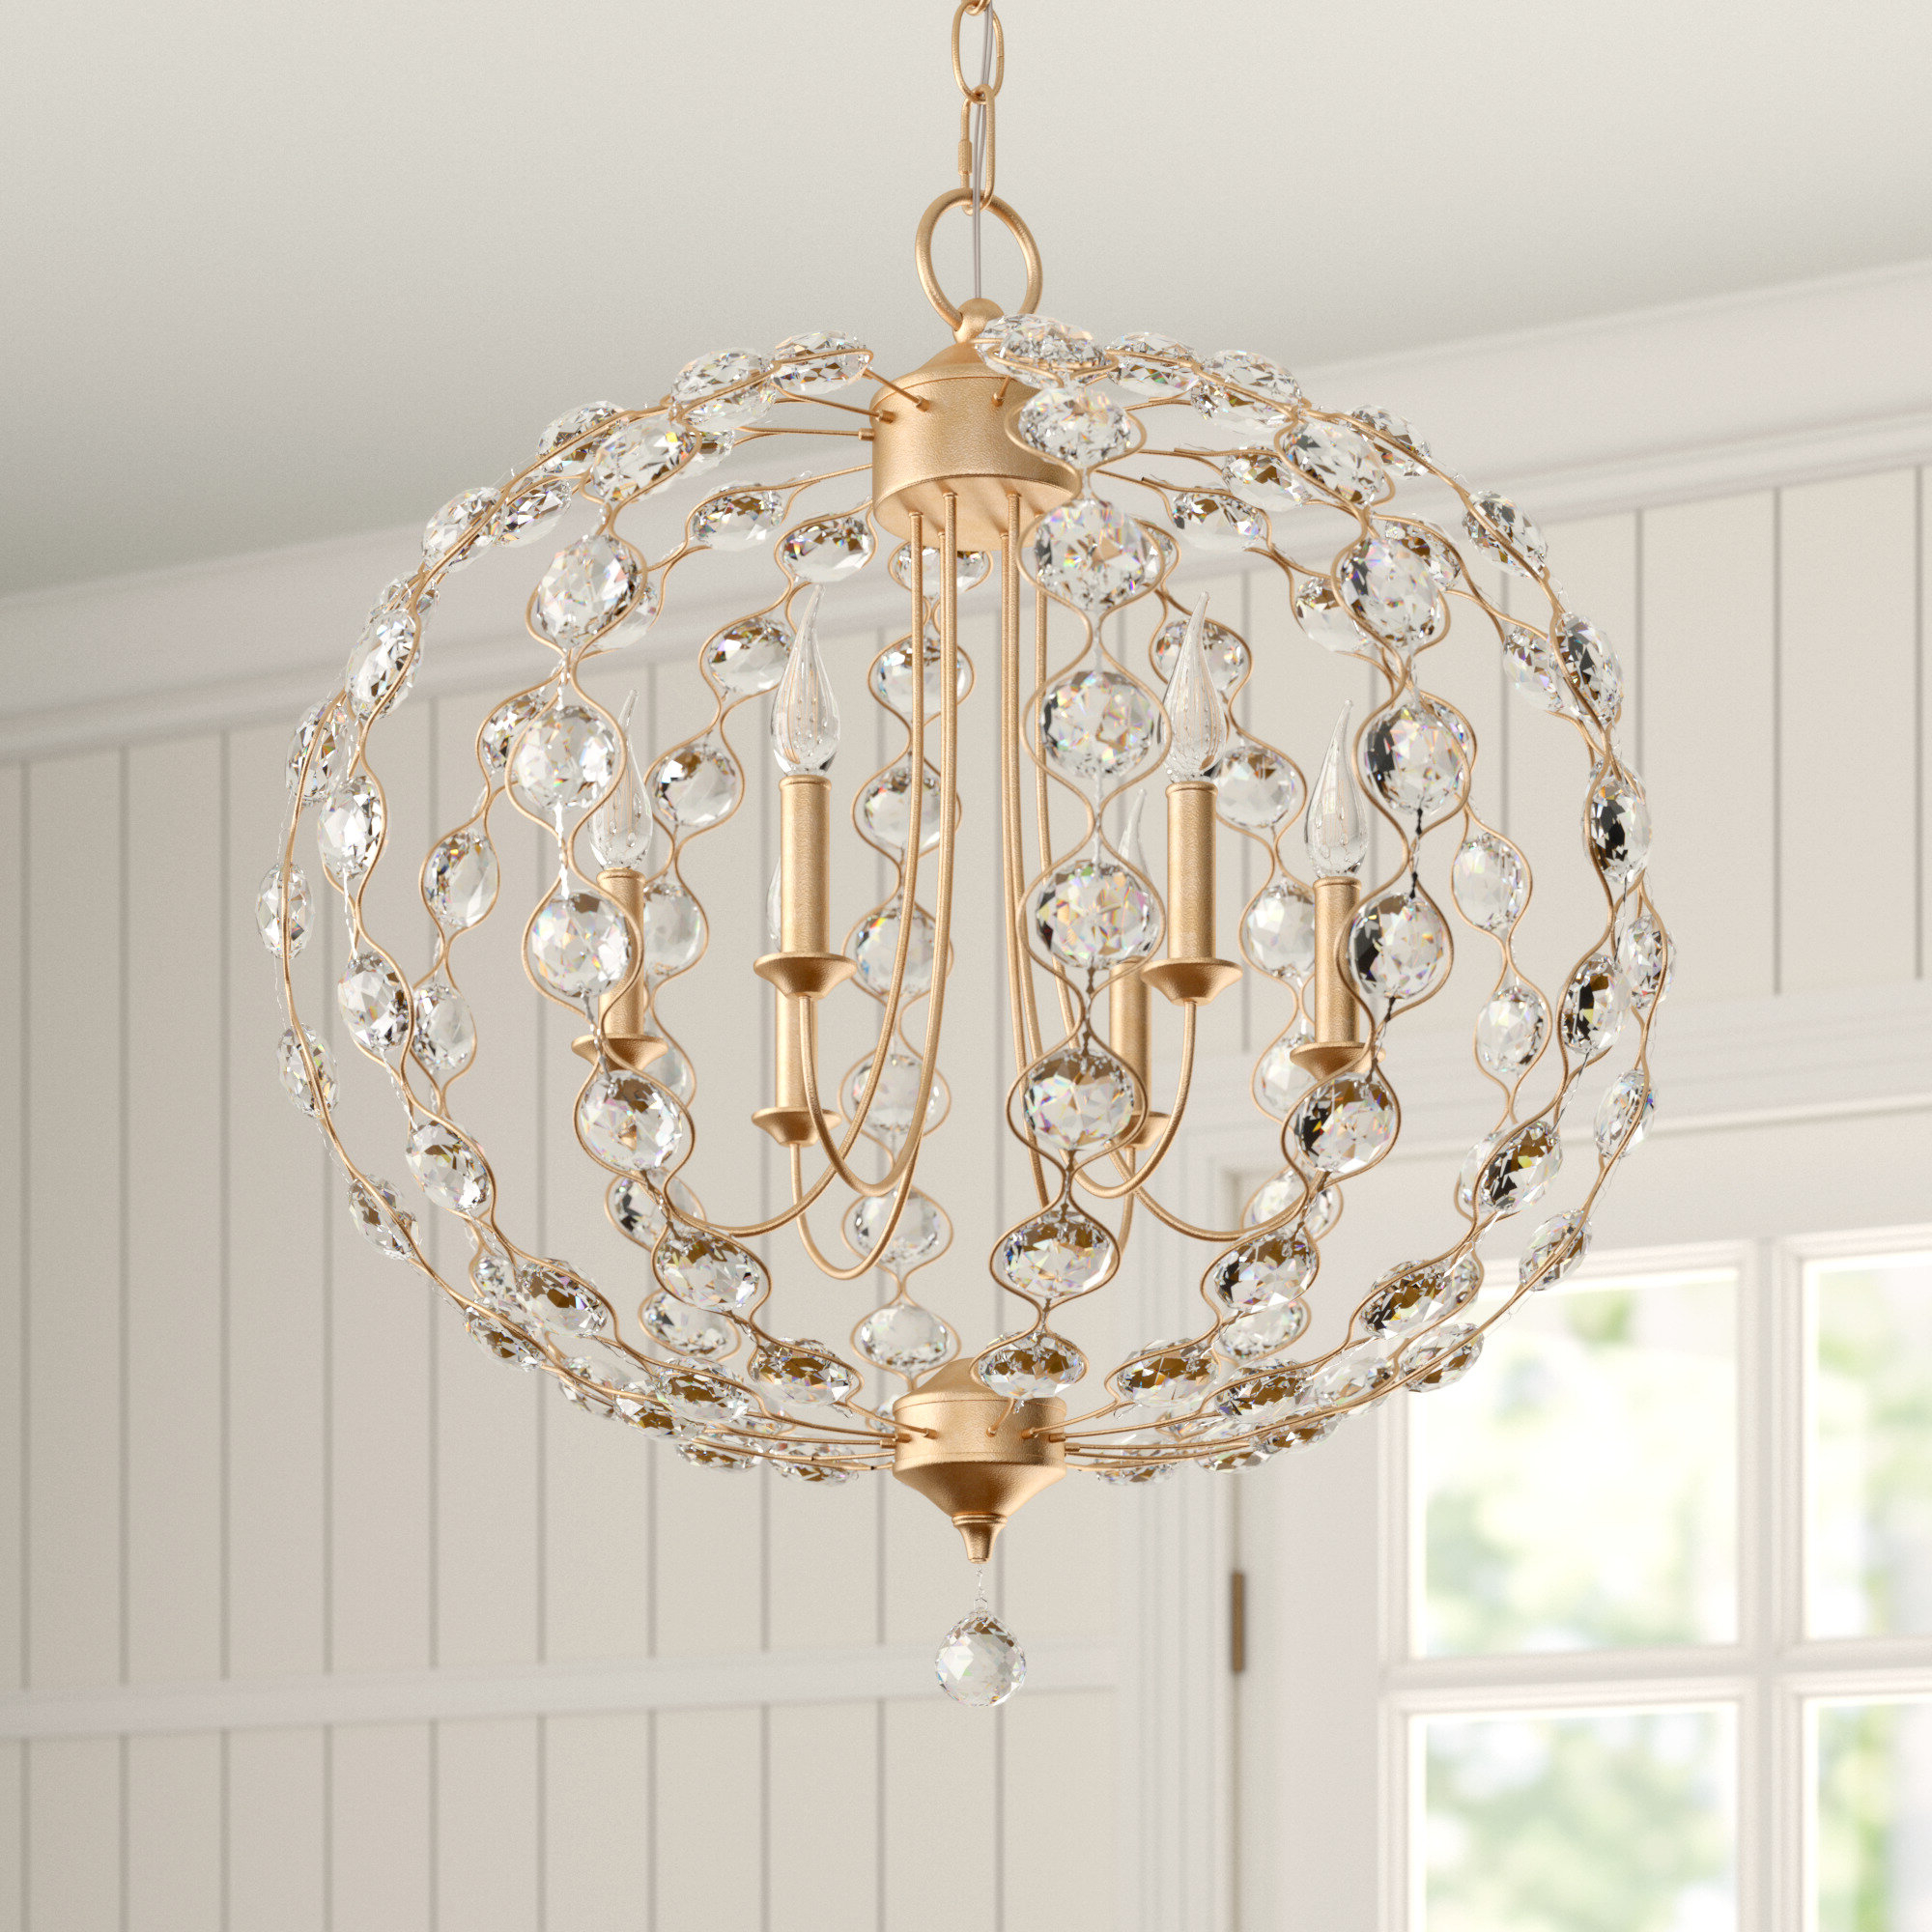 Annuziata 3 Light Unique/statement Chandeliers With Famous Farmhouse & Rustic 3 Chandeliers (View 23 of 25)